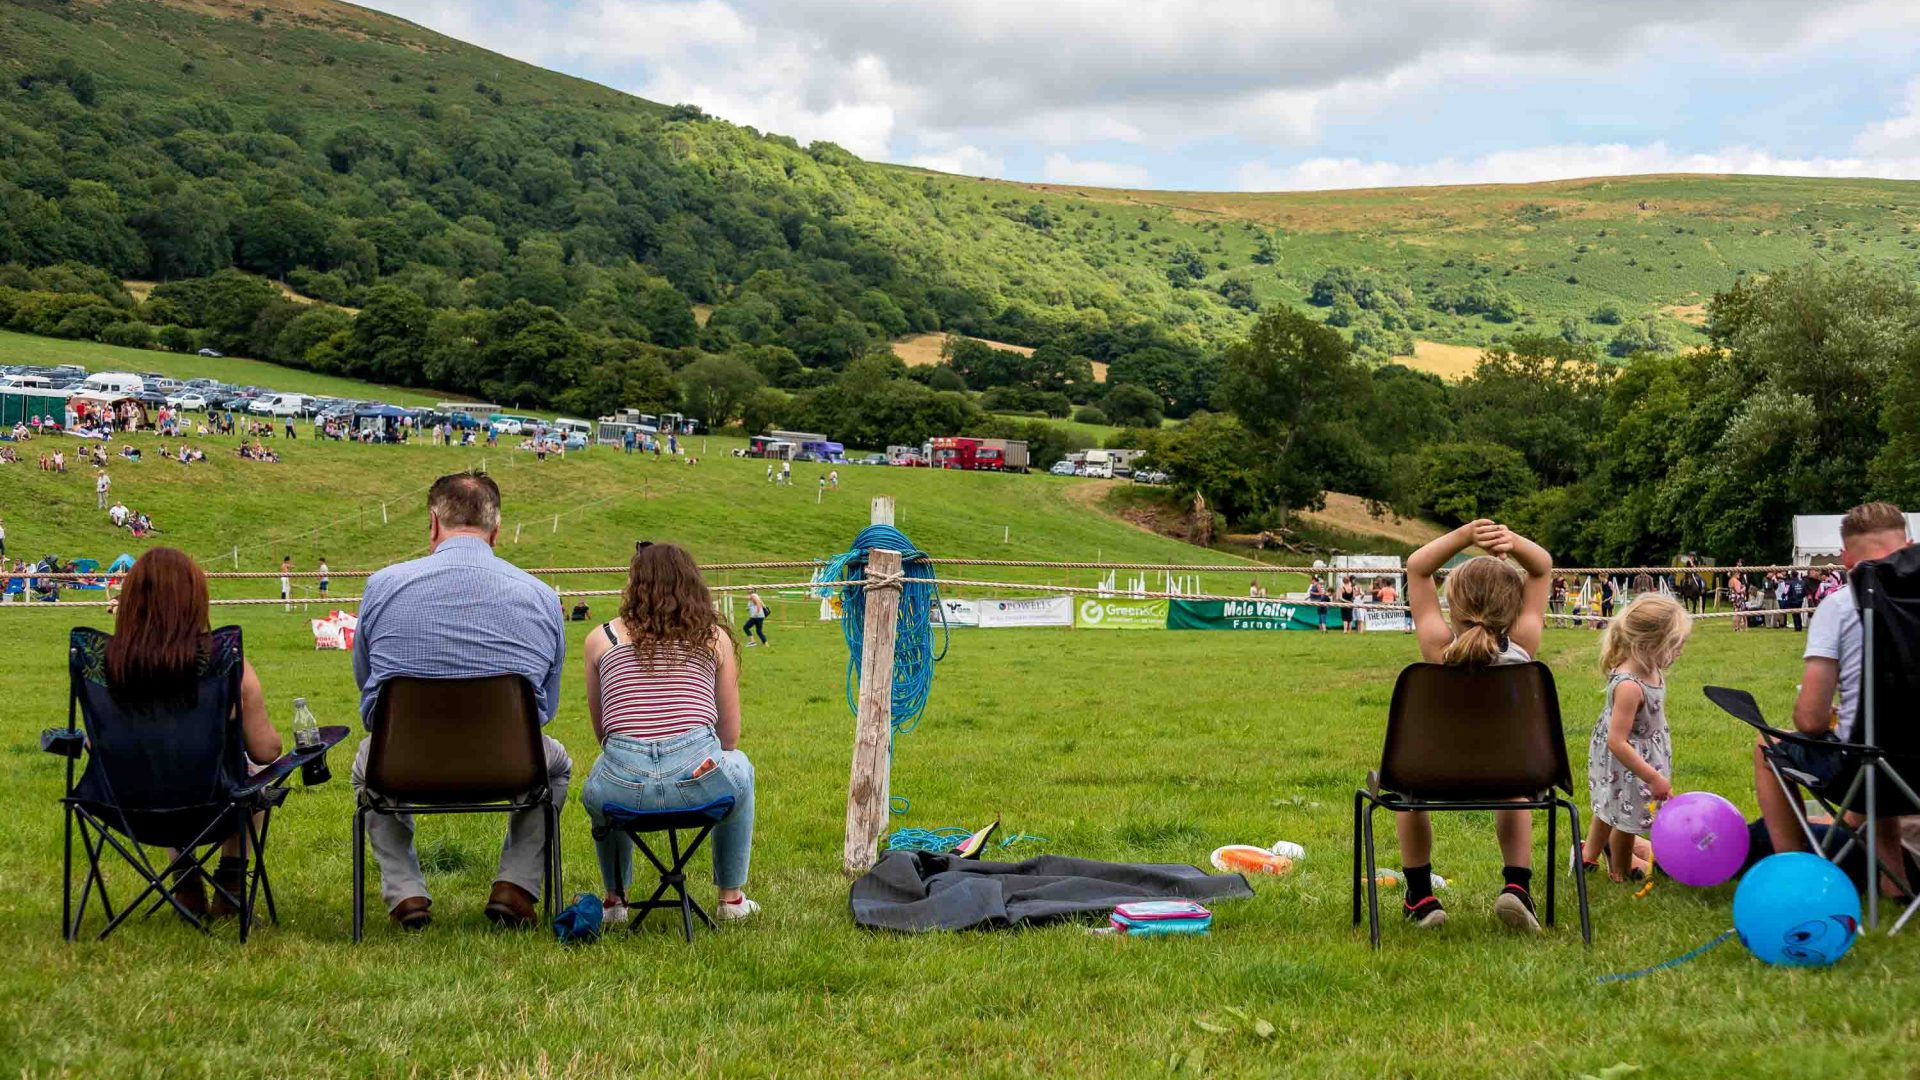 Spectators set up chairs to enjoy the activities at the Llanthony Valley and District Show.